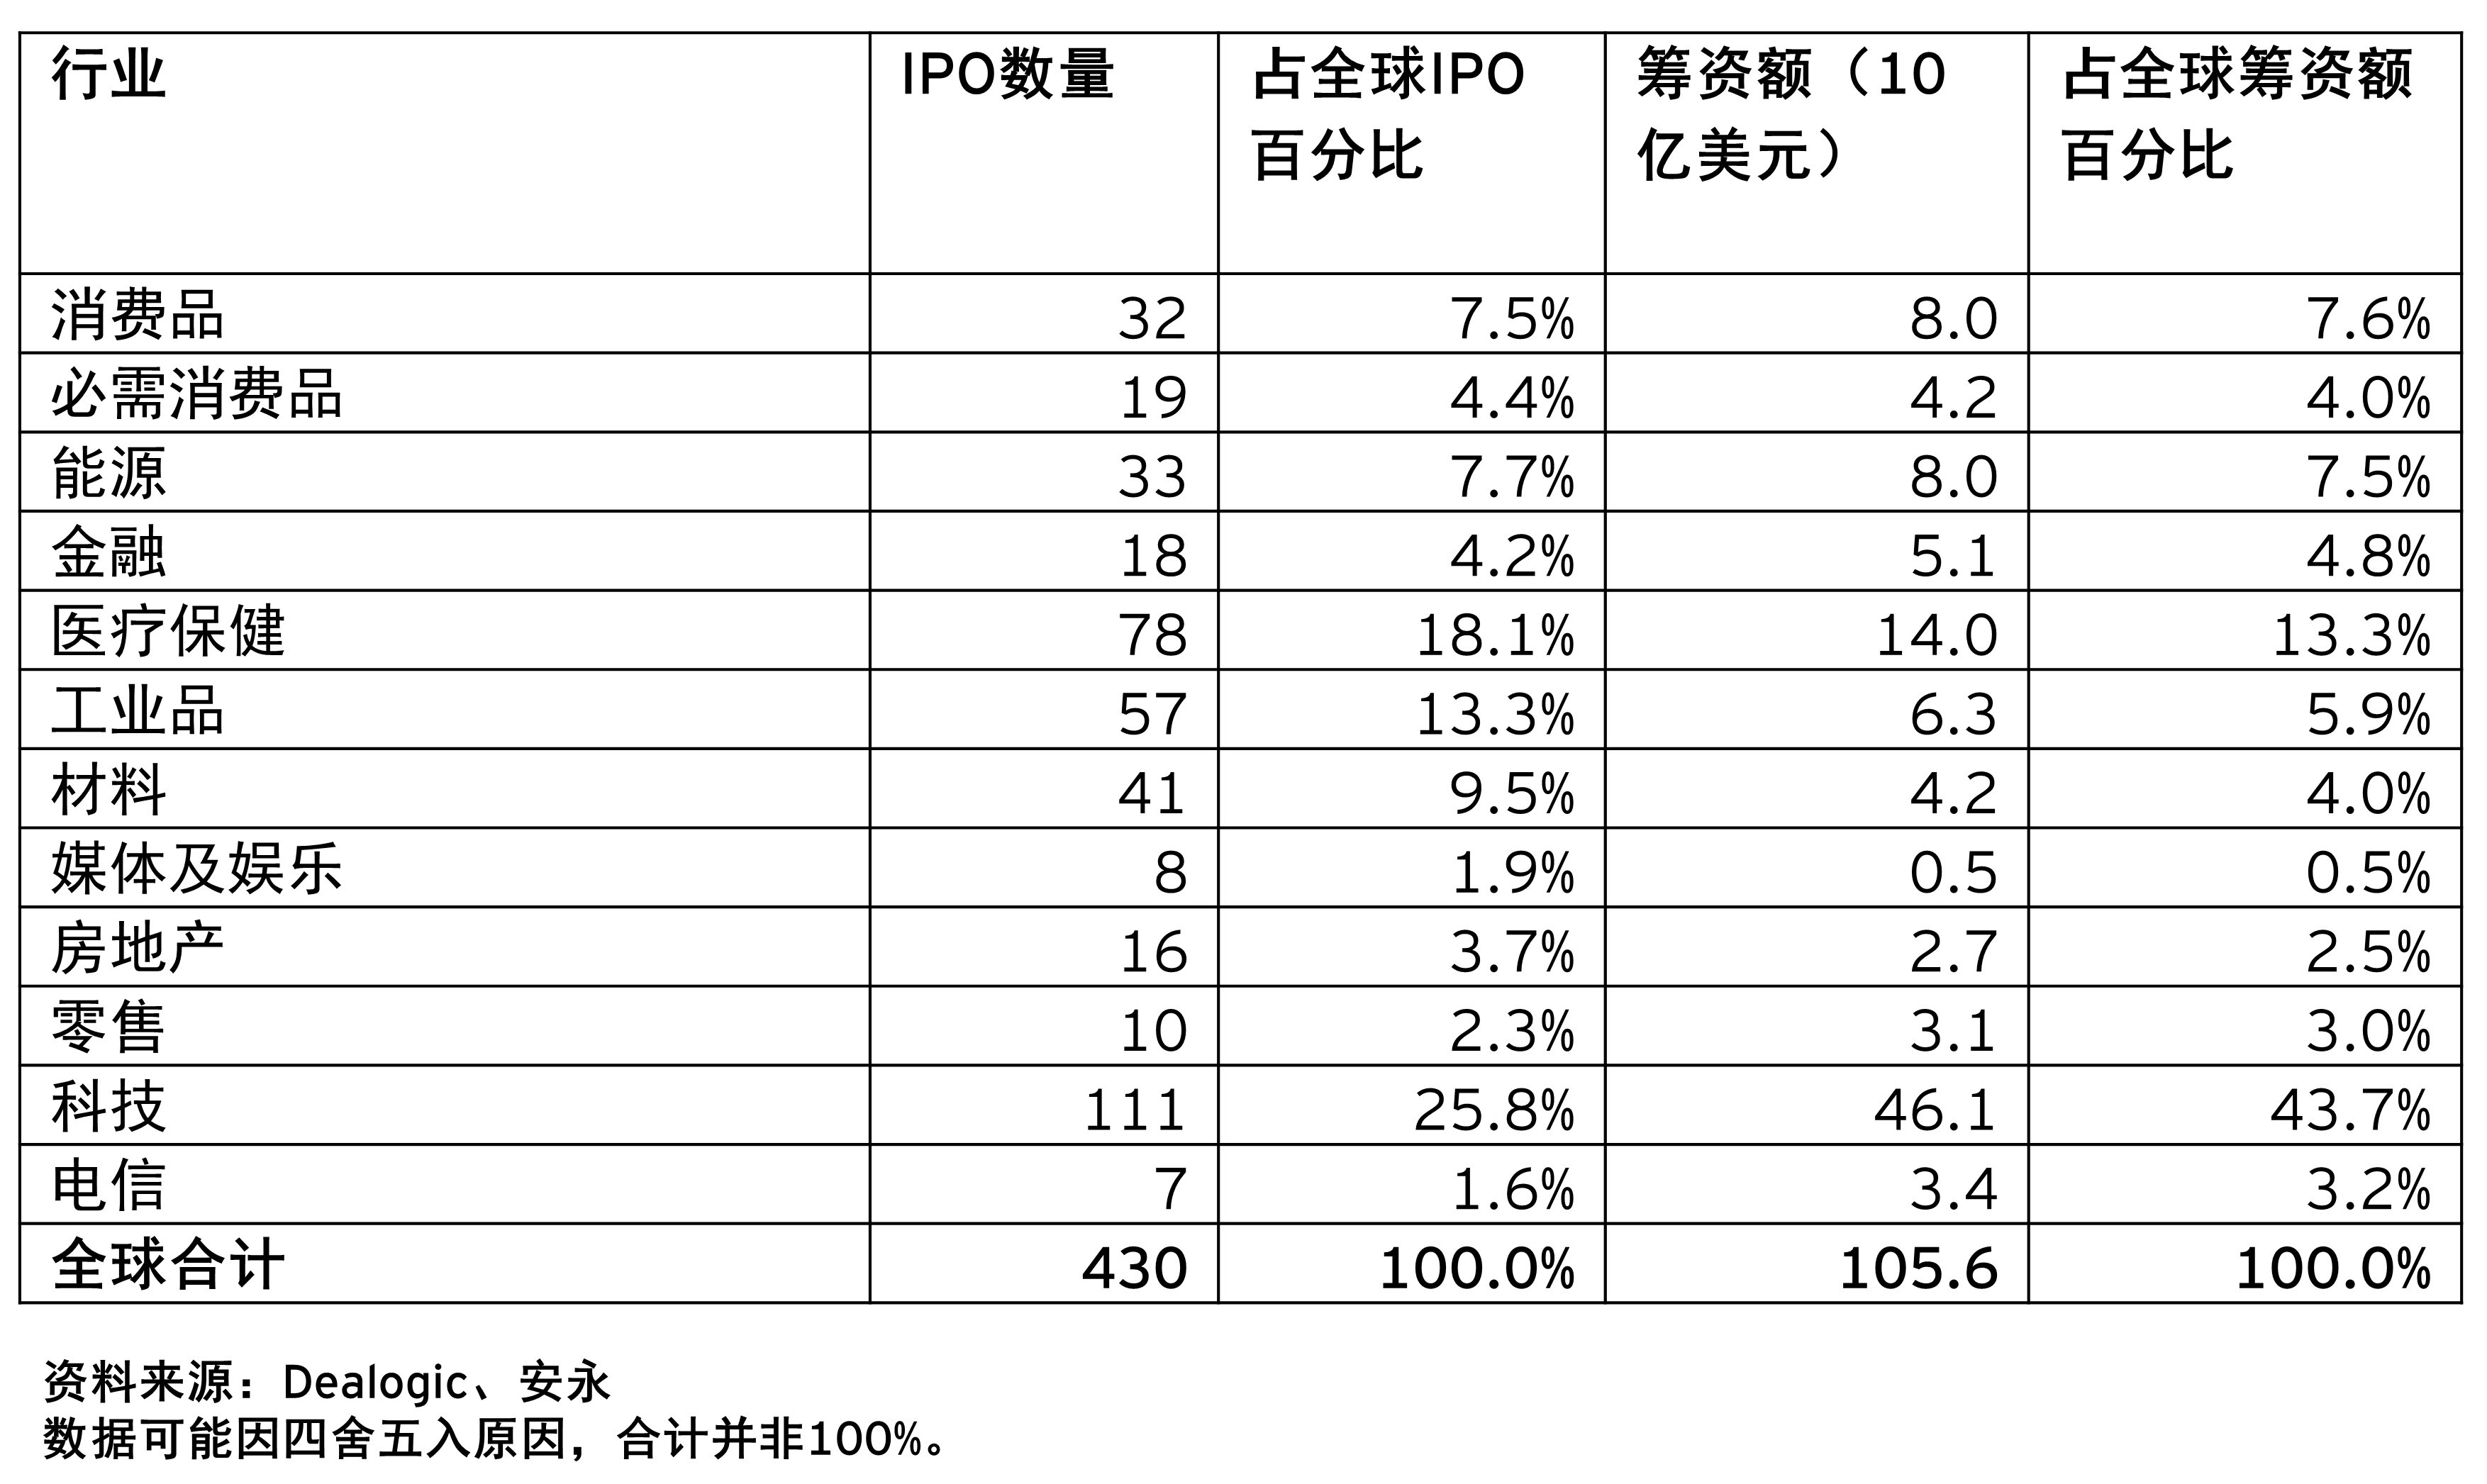 Q1 2021 global IPO activity by sectors